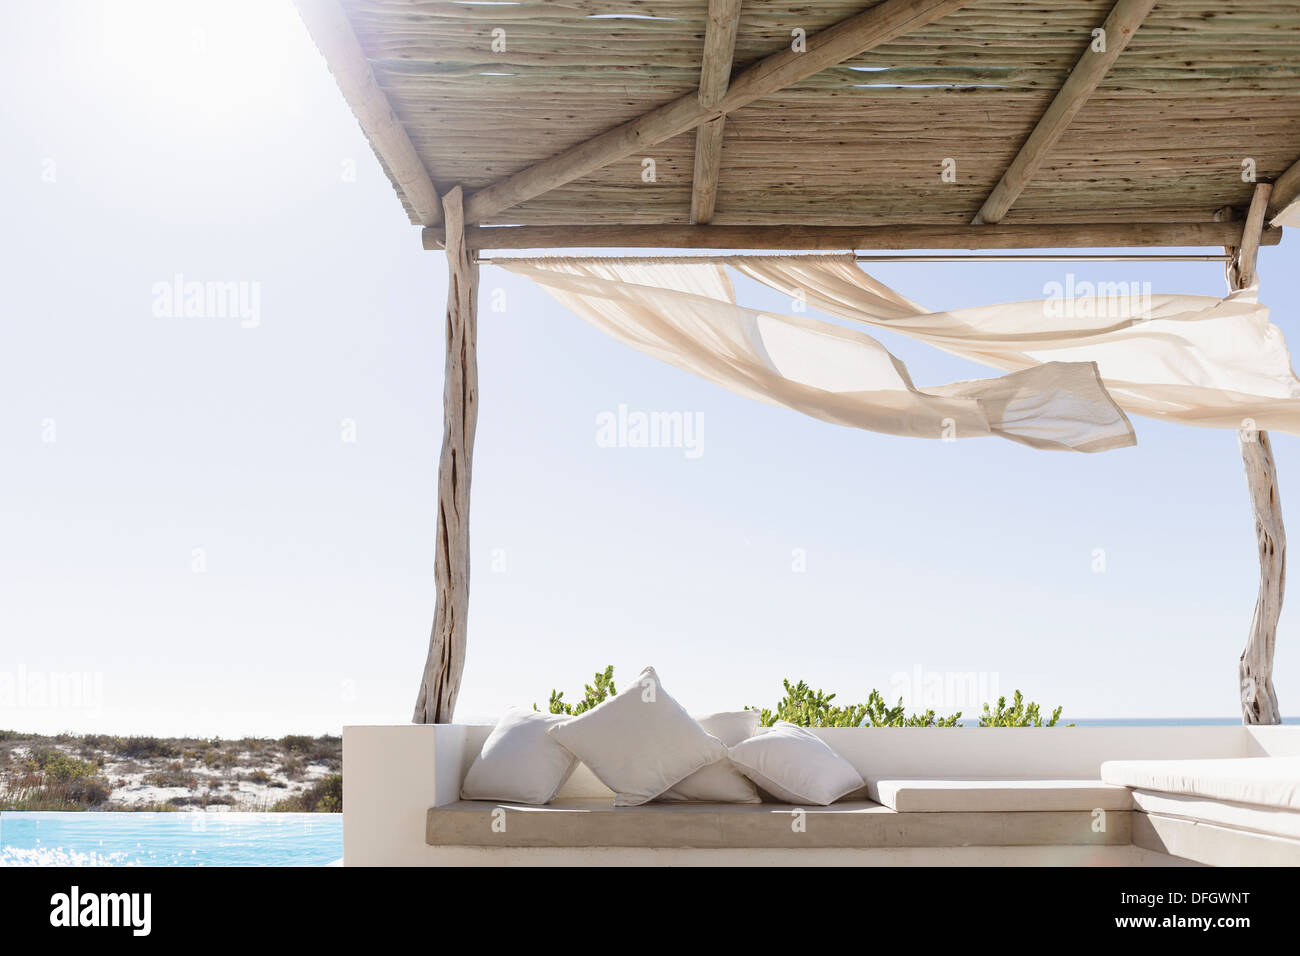 Curtains blowing in wind on modern patio - Stock Image & Curtains Blowing Stock Photos u0026 Curtains Blowing Stock Images - Alamy